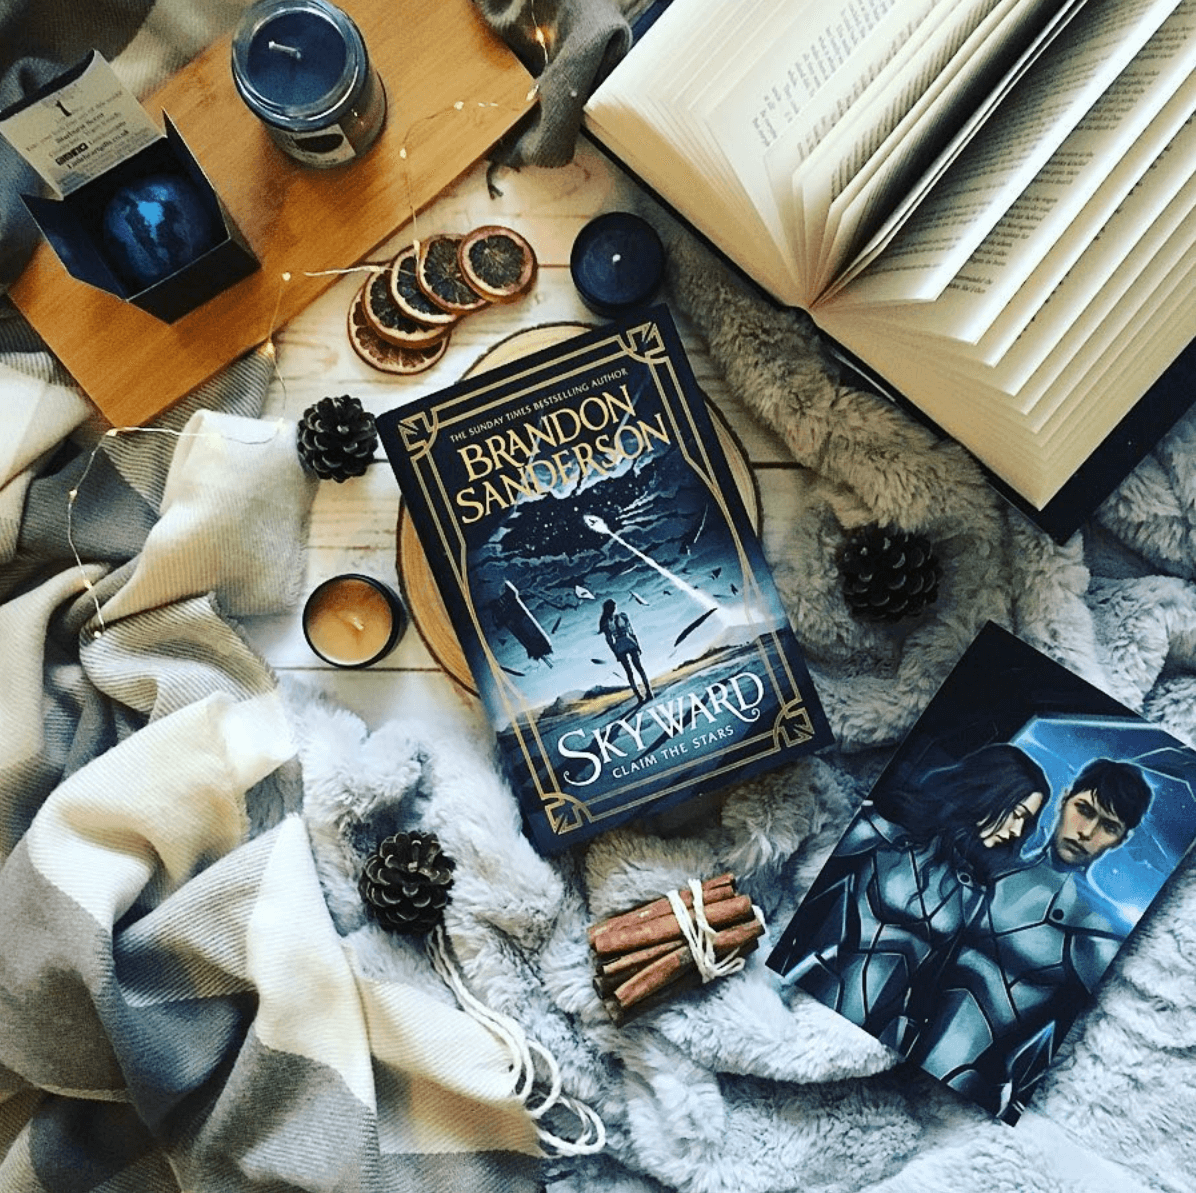 Skyward by Brandon Sanderson Readalong schedule